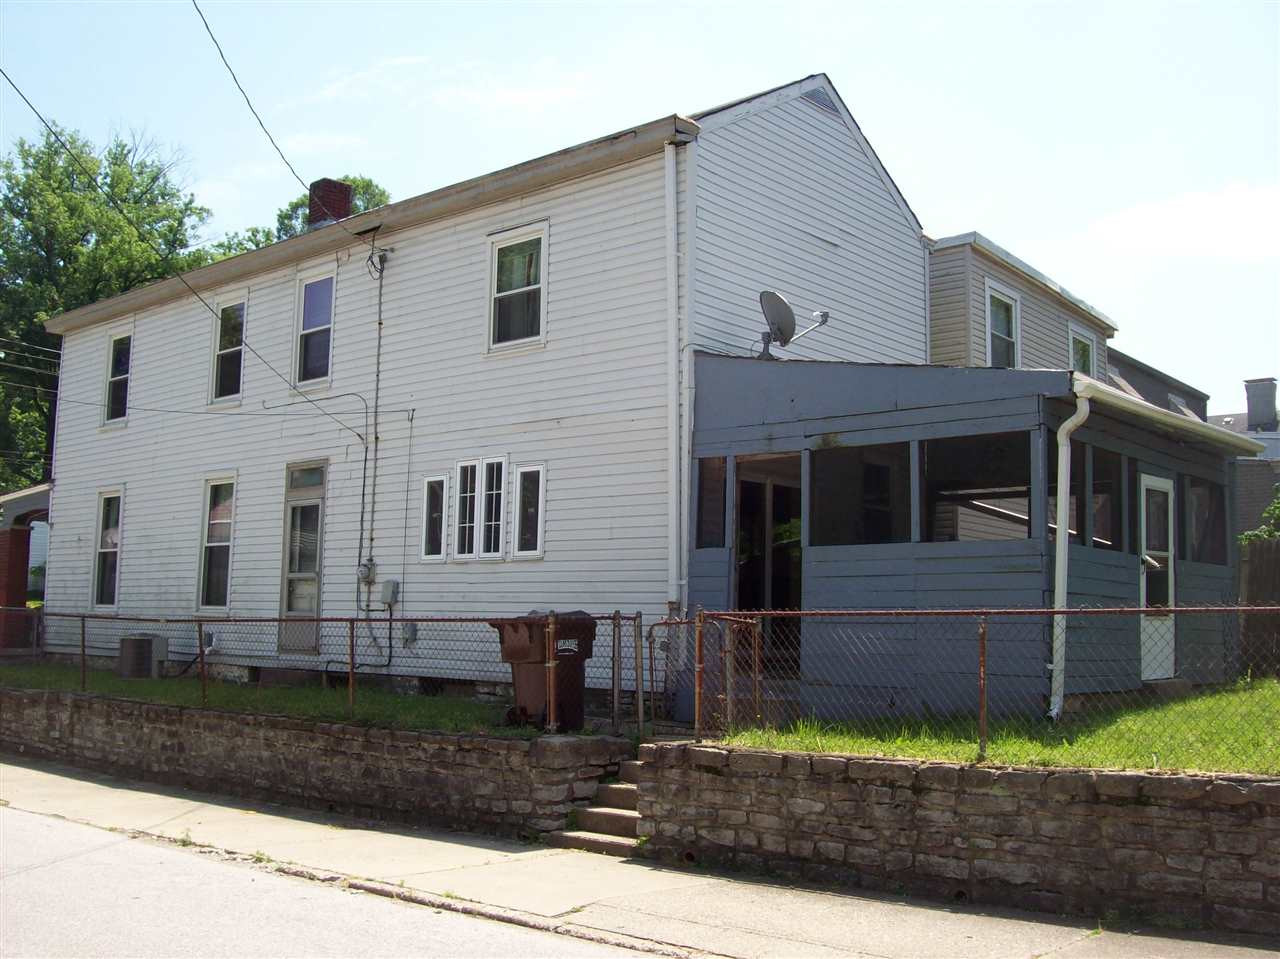 Photo 2 for 10 Euclid St Ludlow, KY 41016